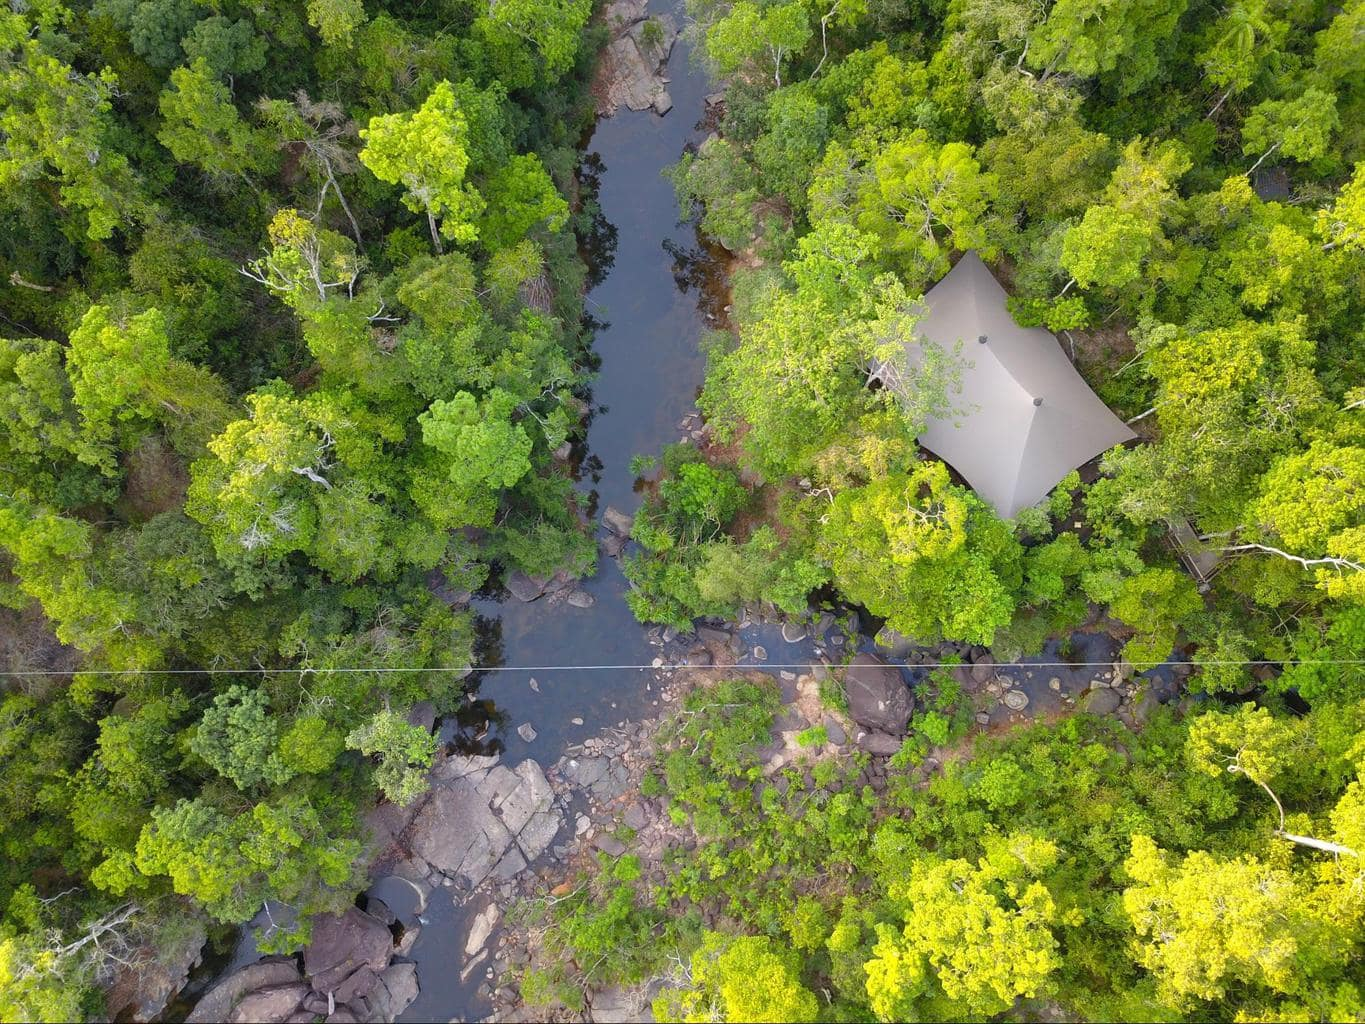 Drone view of the tents at Shinta Mani Wild